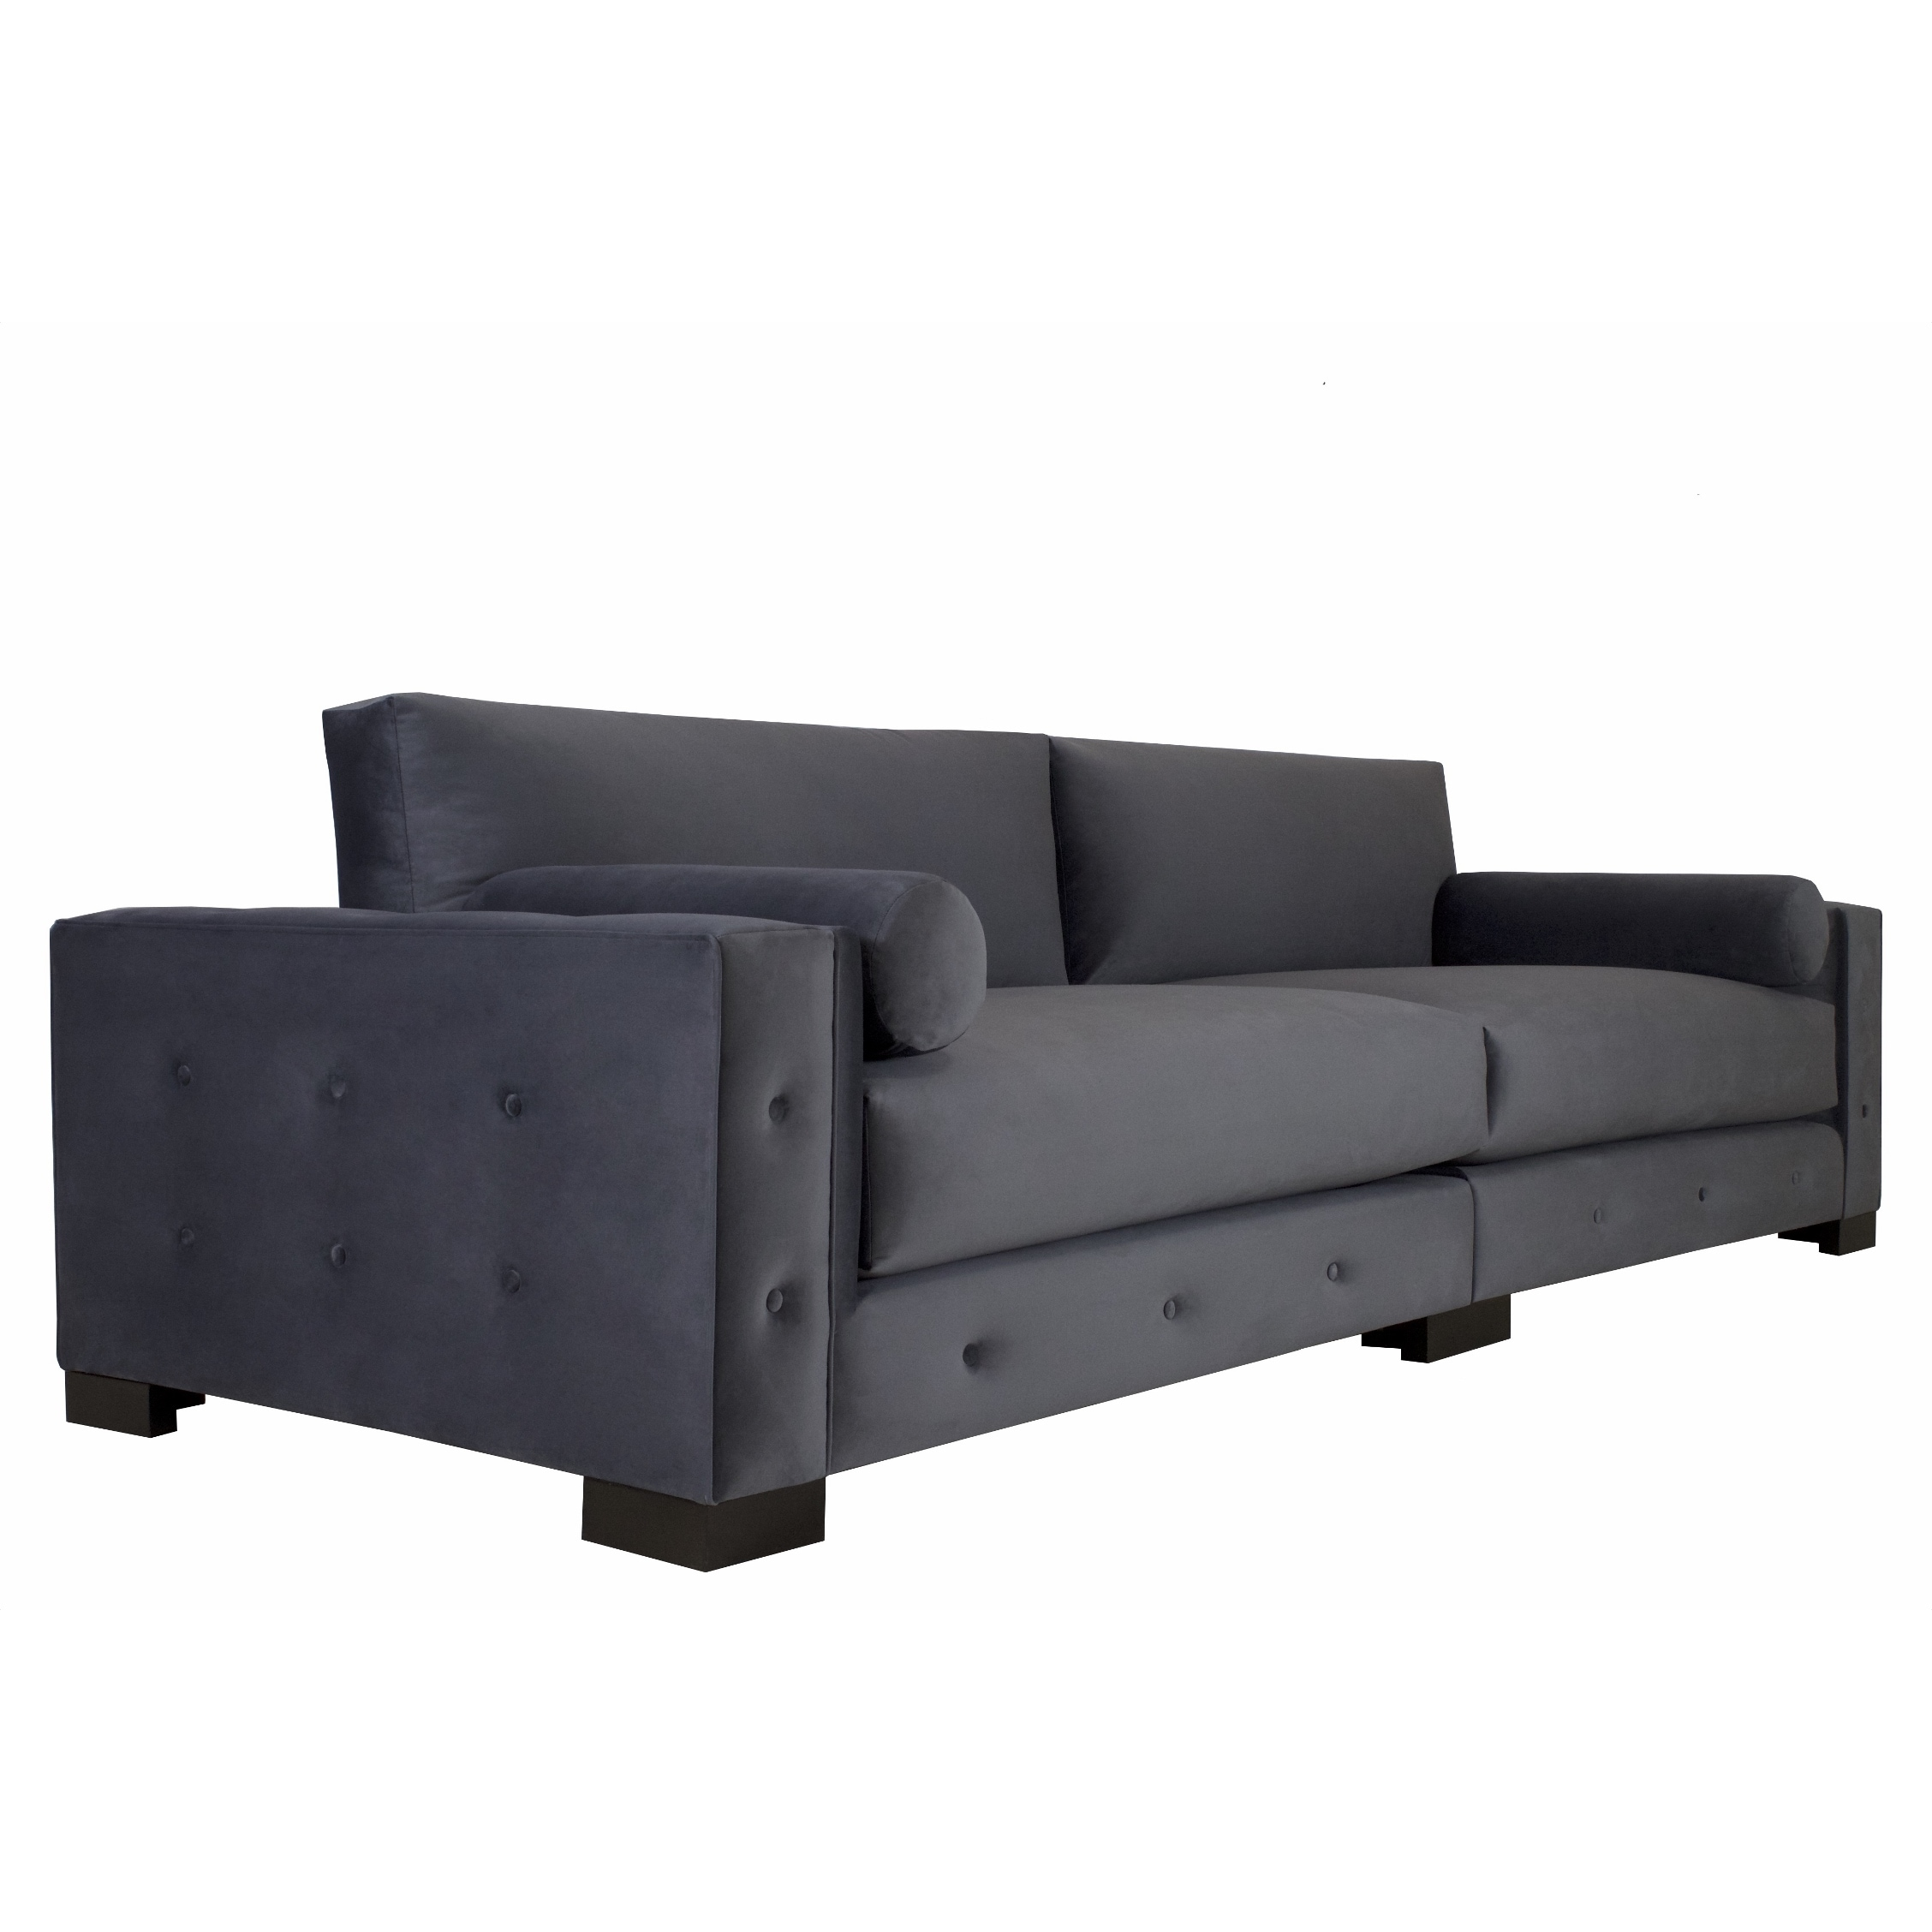 Jar Designs Stanford Sofa Free Shipping Today 11405335